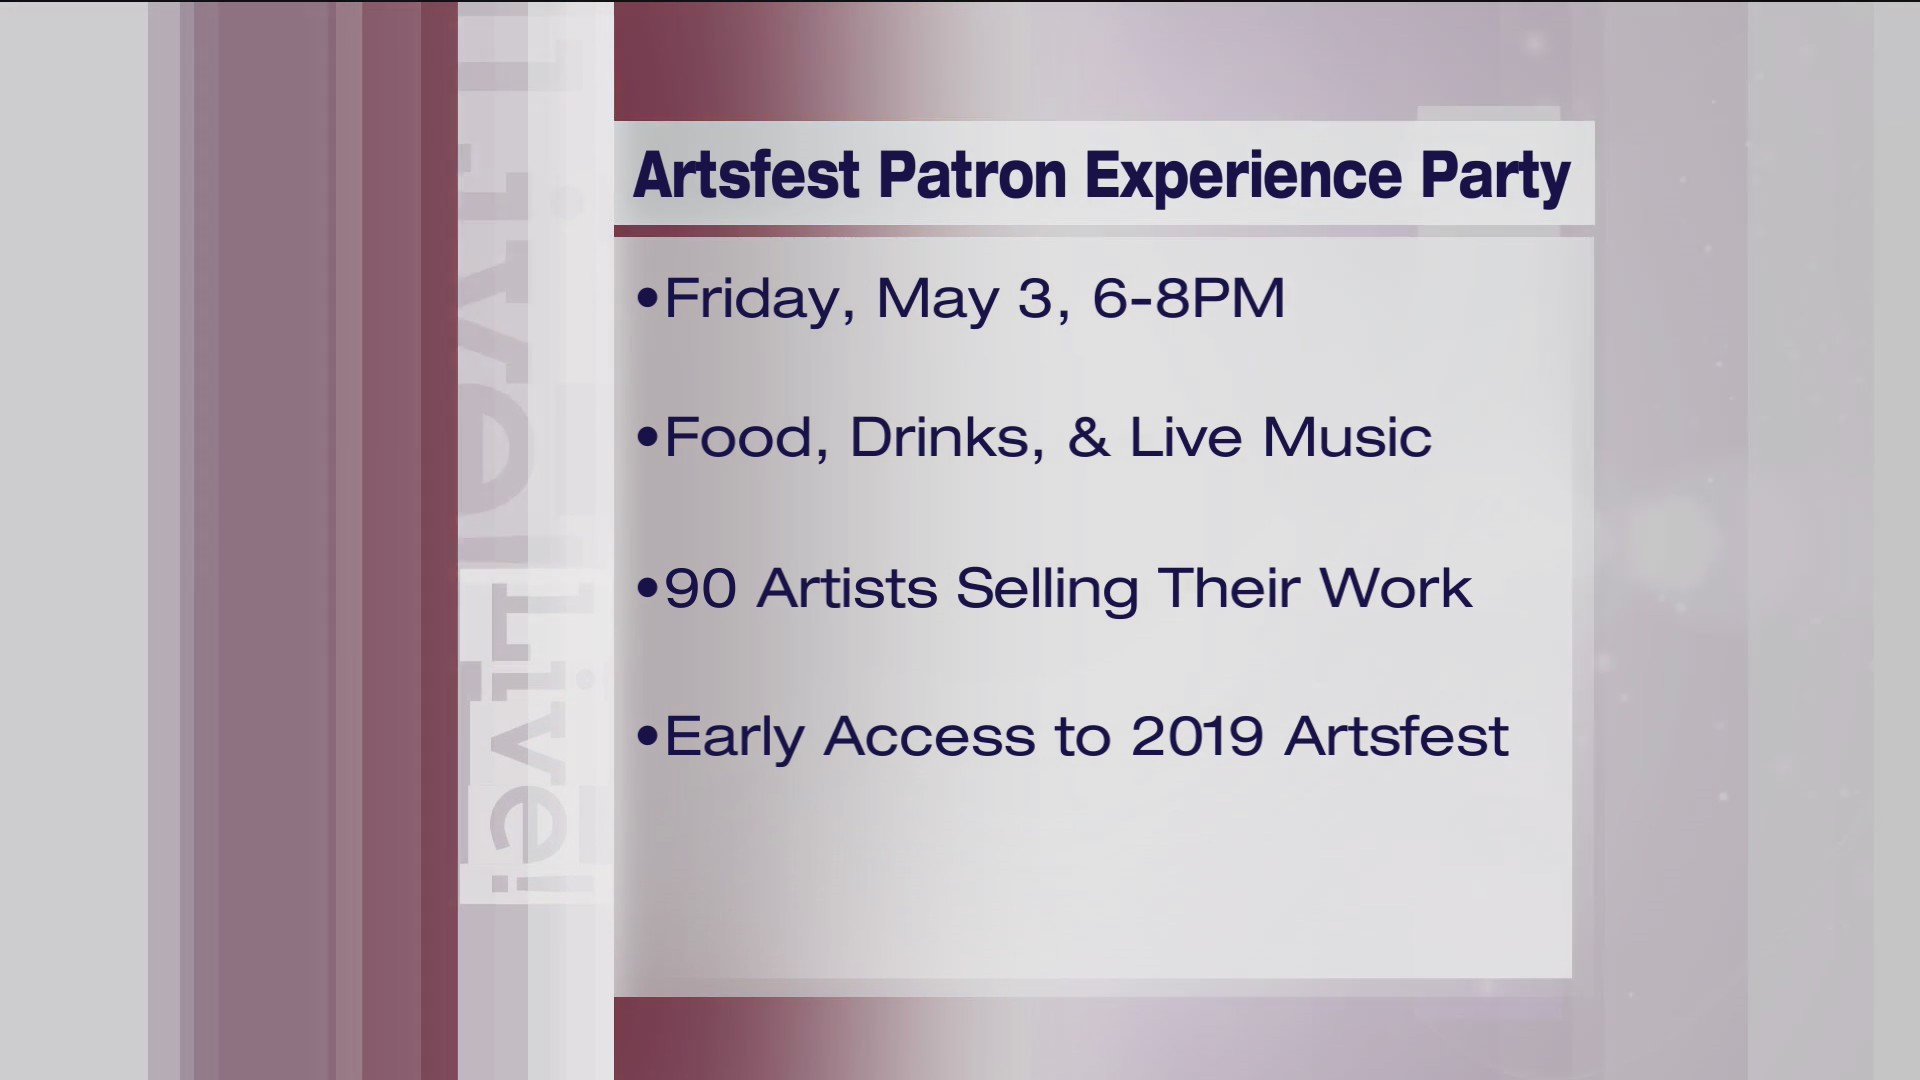 Artsfest Patron Experience Party - 4/24/19